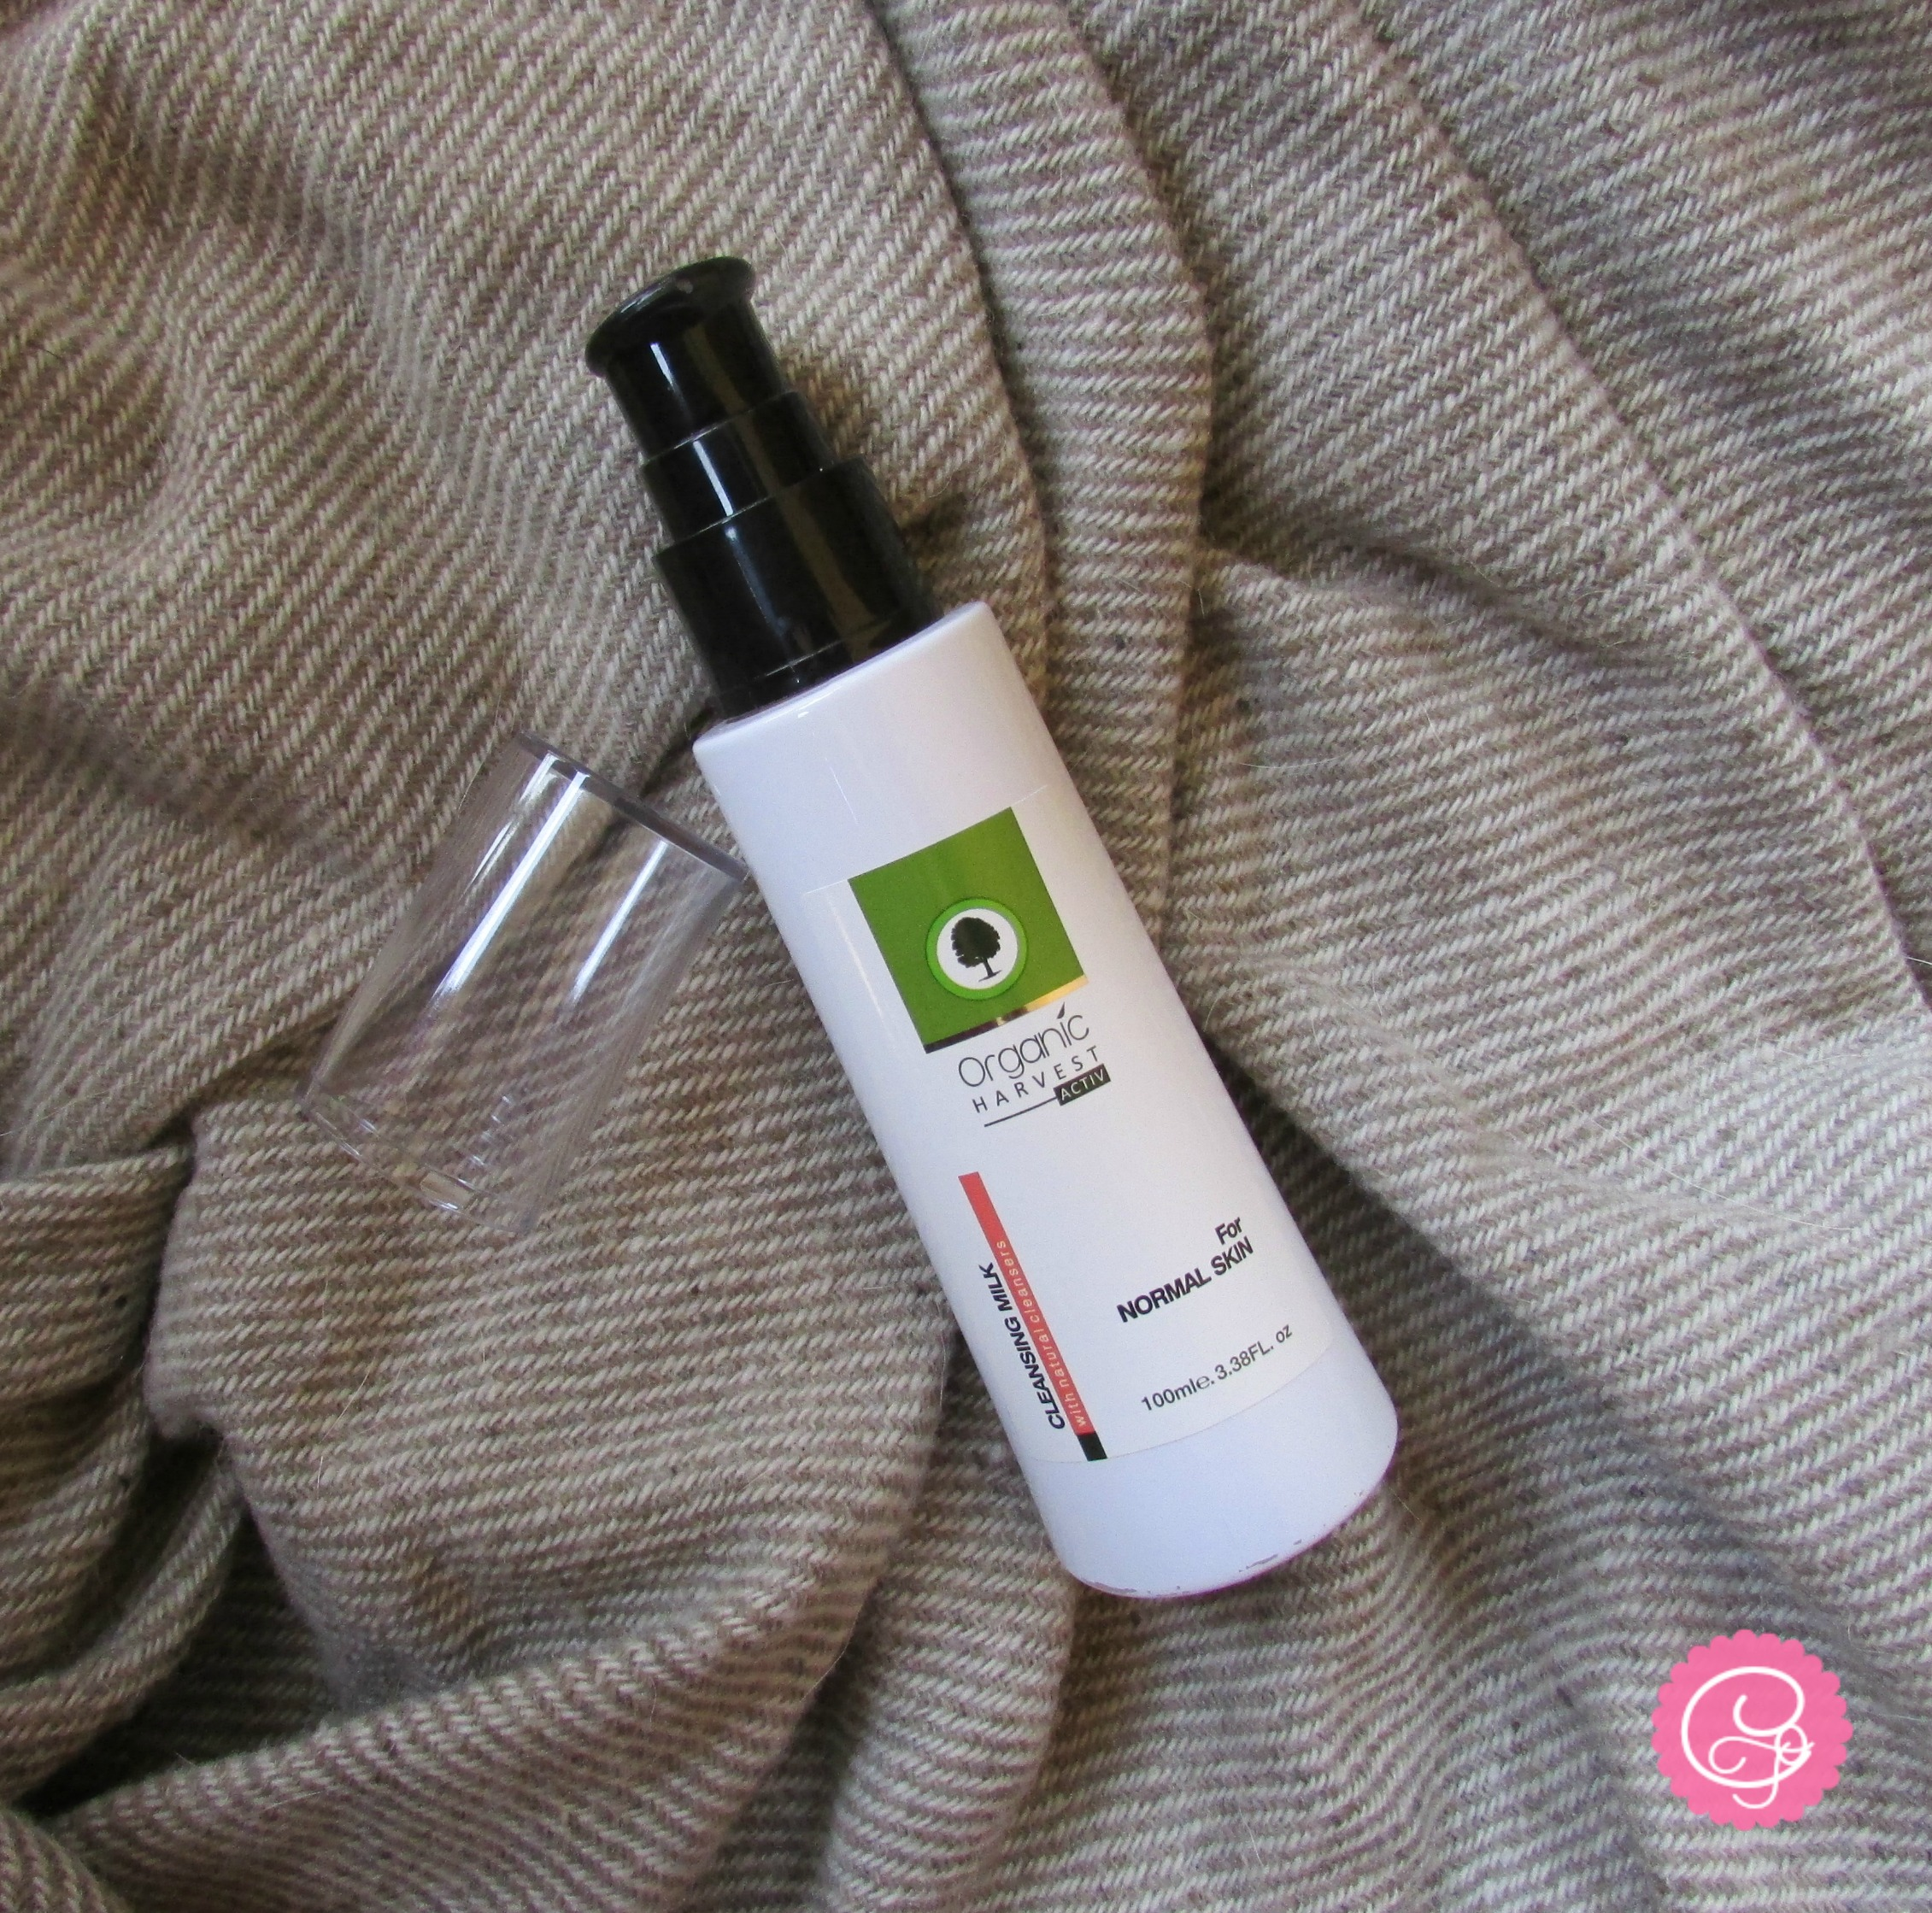 Organic Harvest Activ Cleansing Milk for Normal Skin Review & Price | Cherry On Top